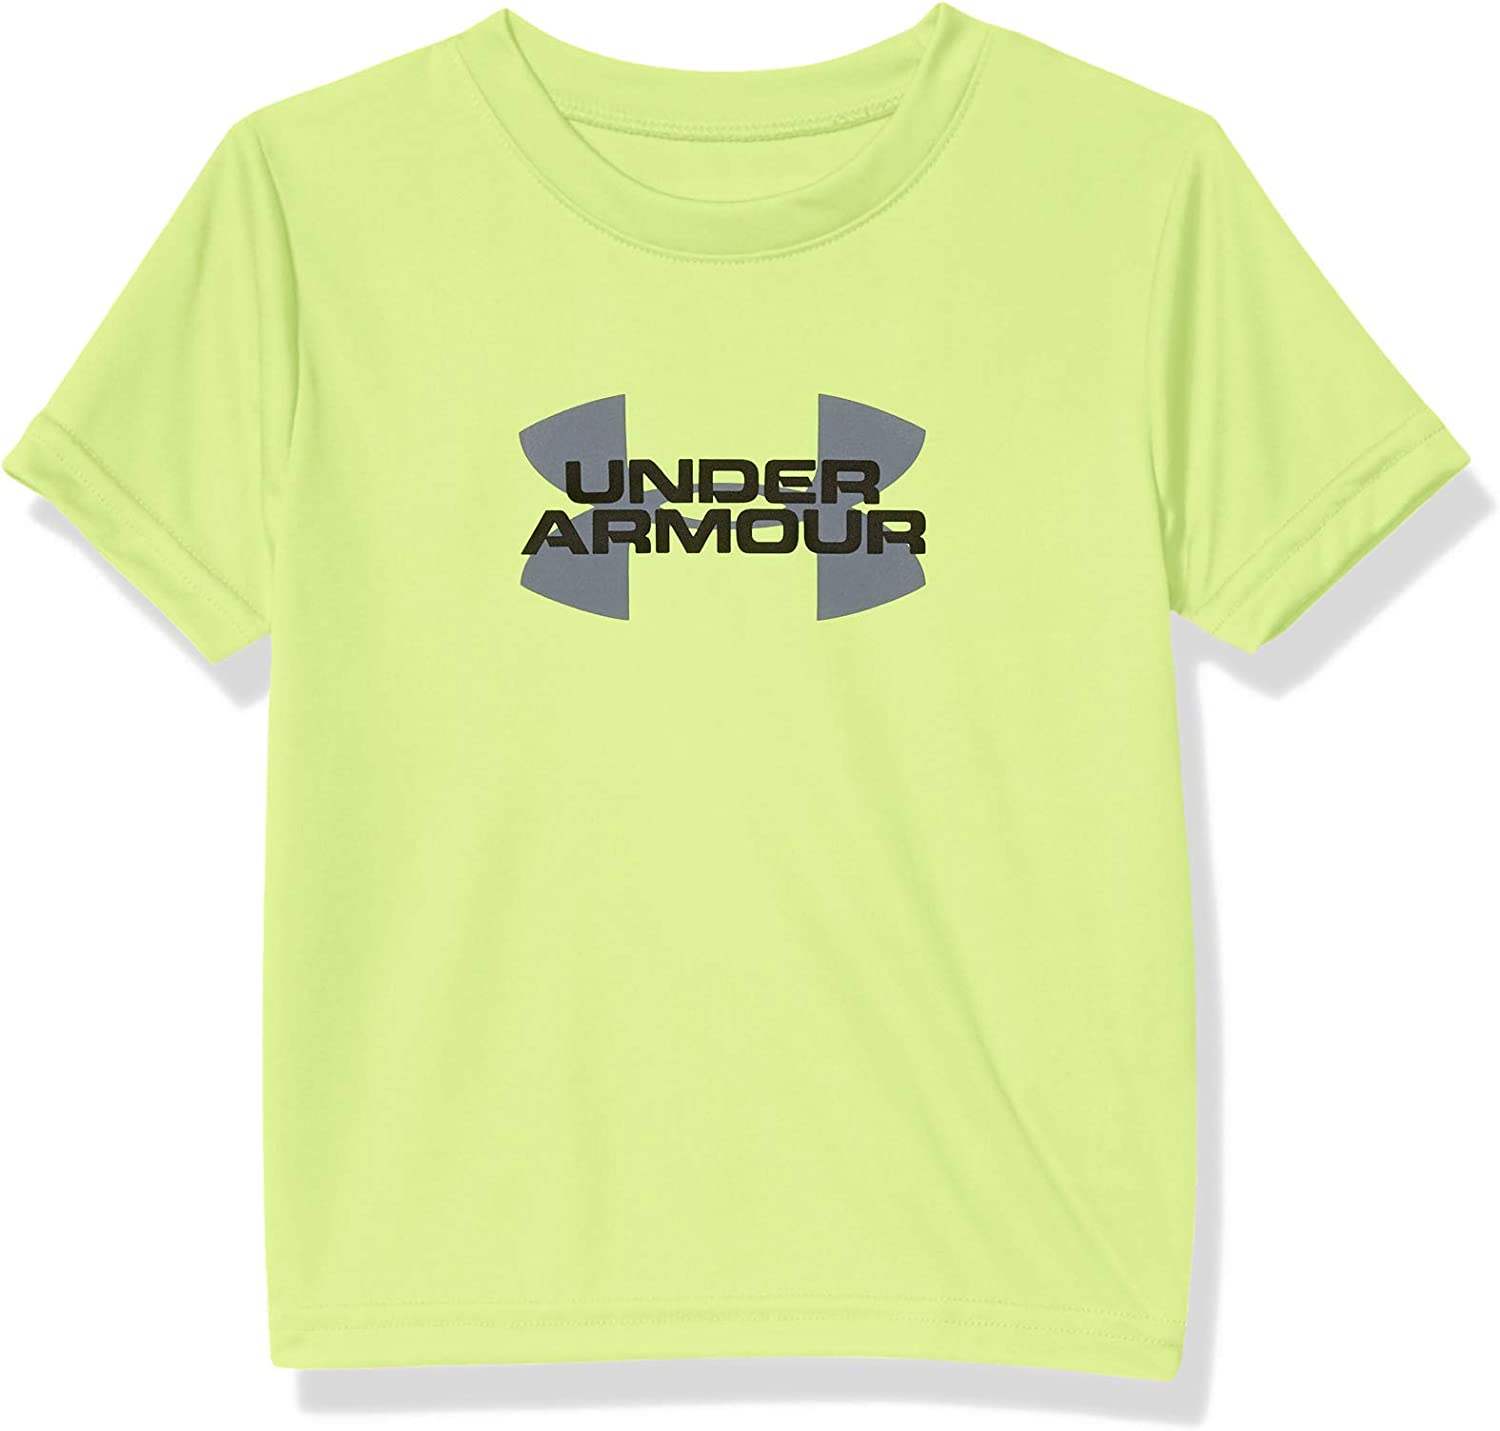 Under Armour Boys Fashion Ss Tee Shirt